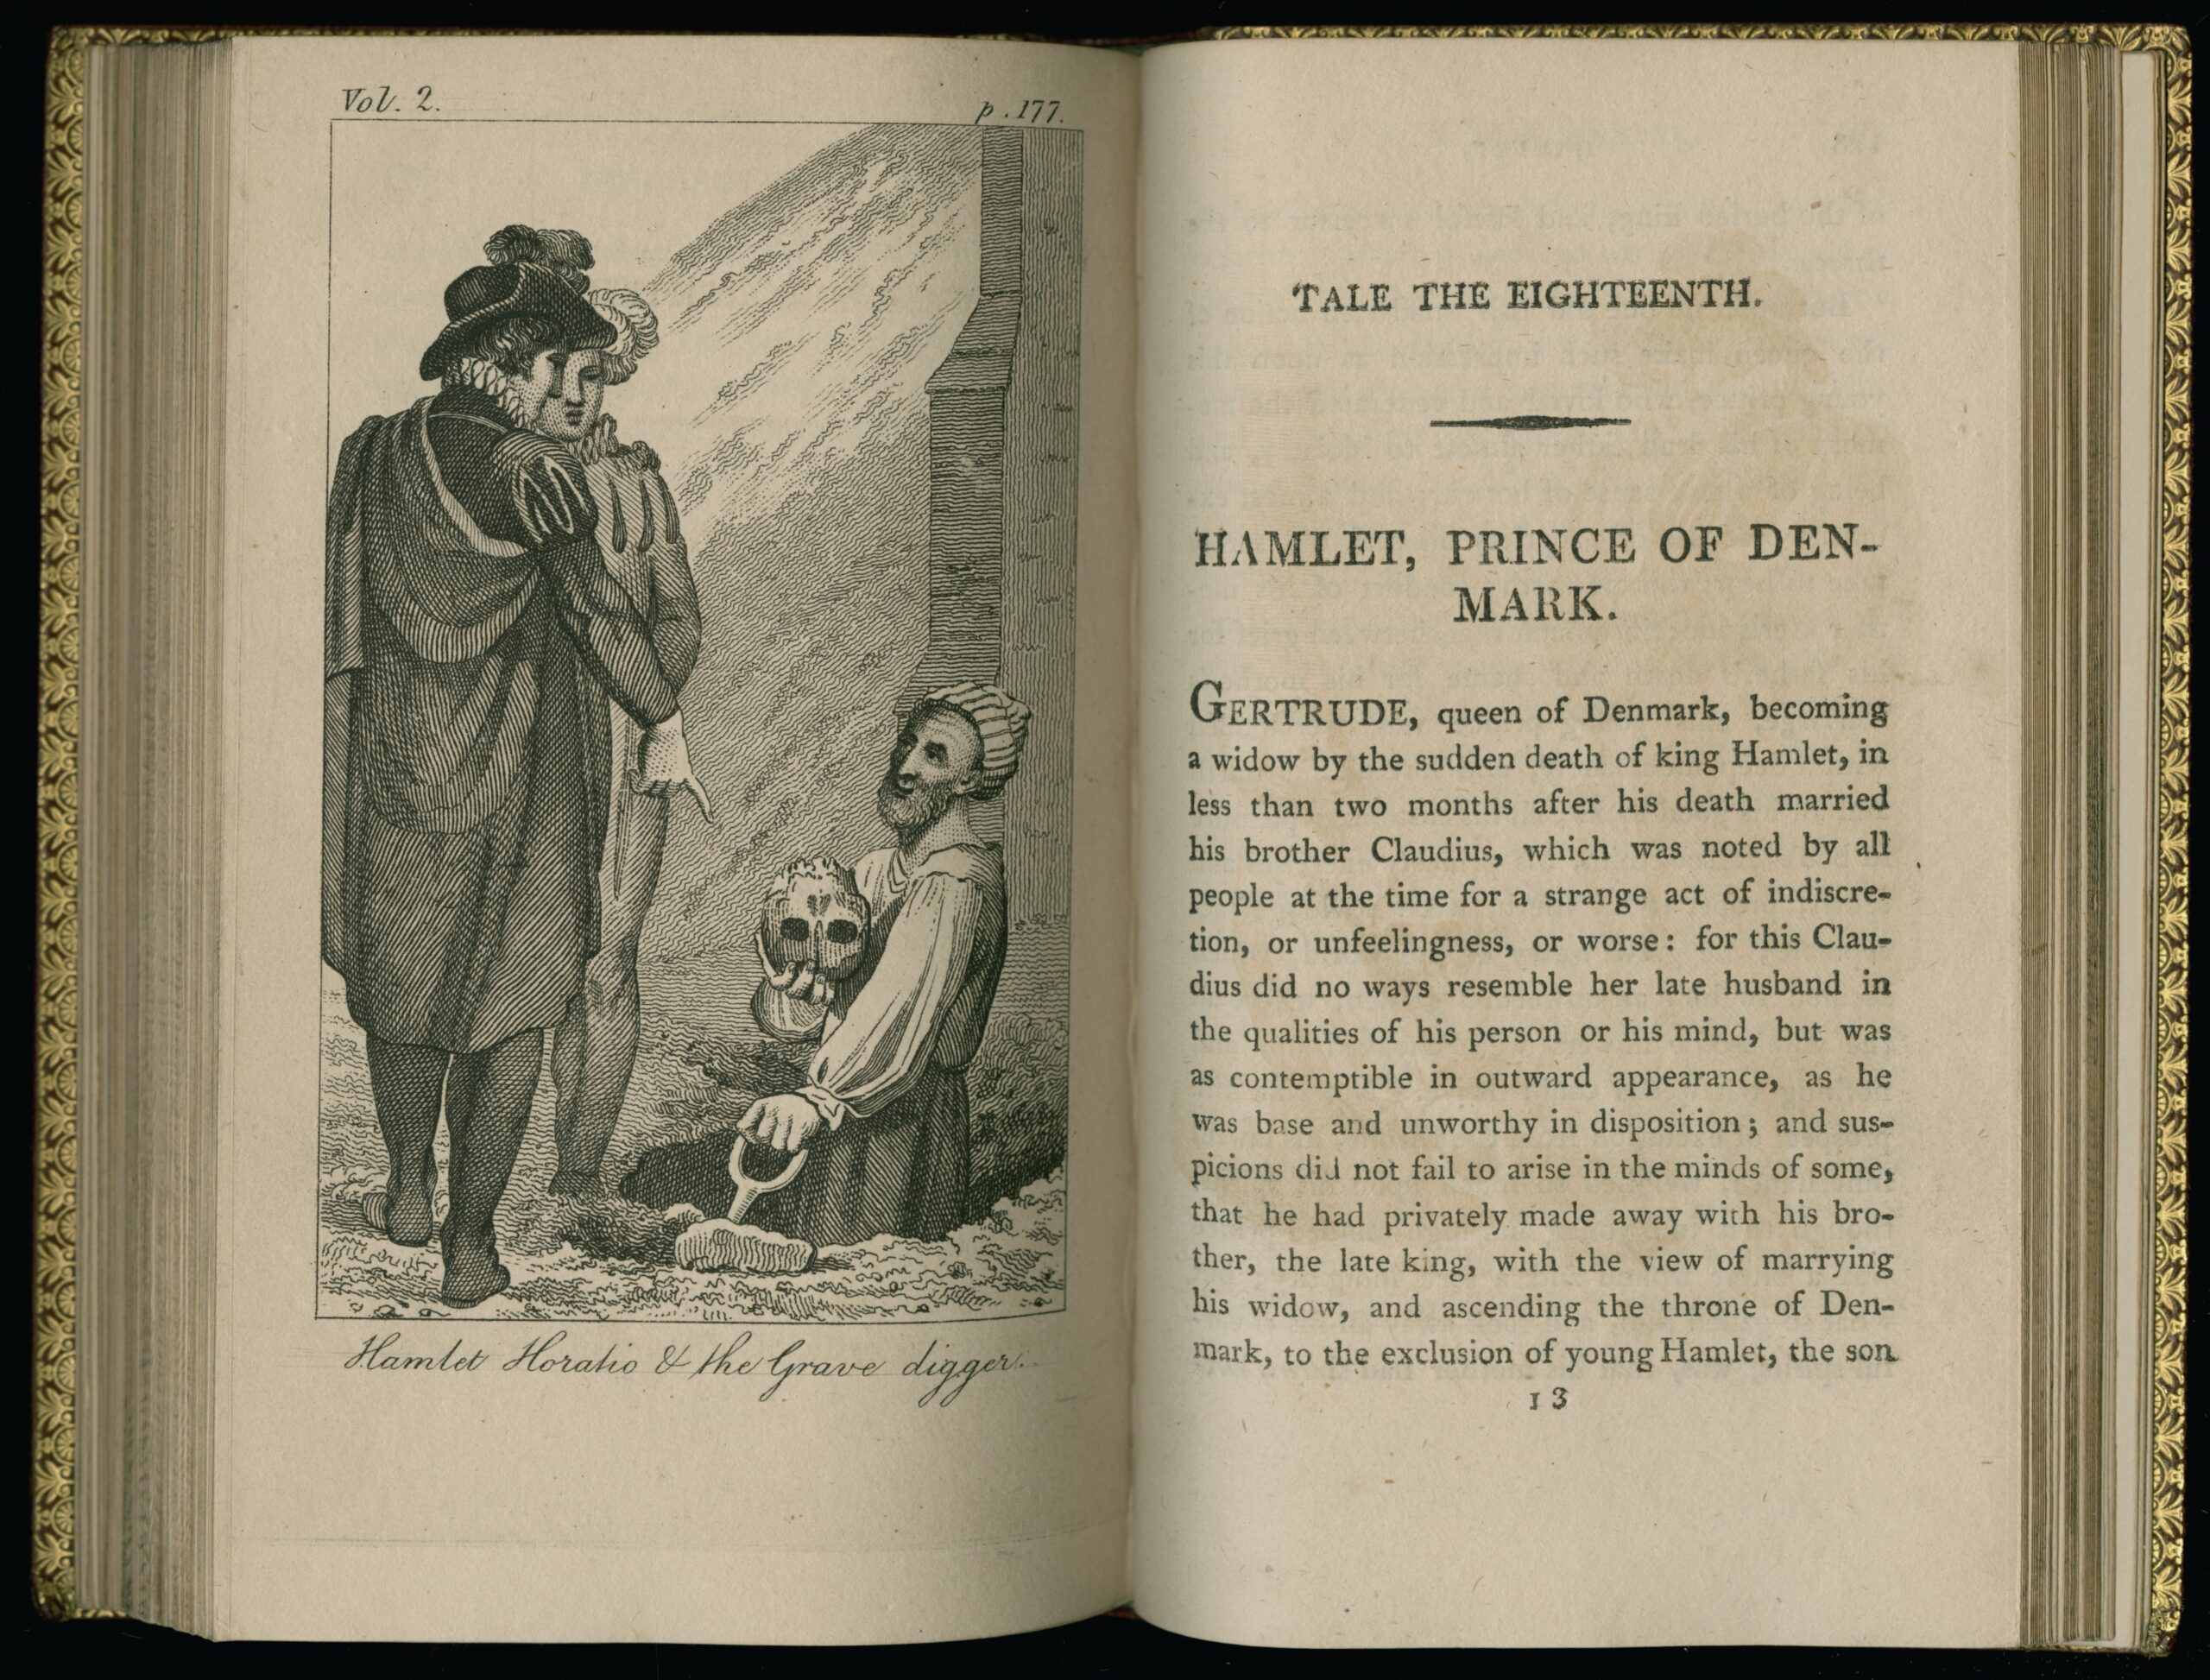 Two-page spread of opening Hamlet chapter. On the right is a page of text, on the left an etching of Hamlet and Horatio talking to the grave digger, who is holding Yorick's skull.